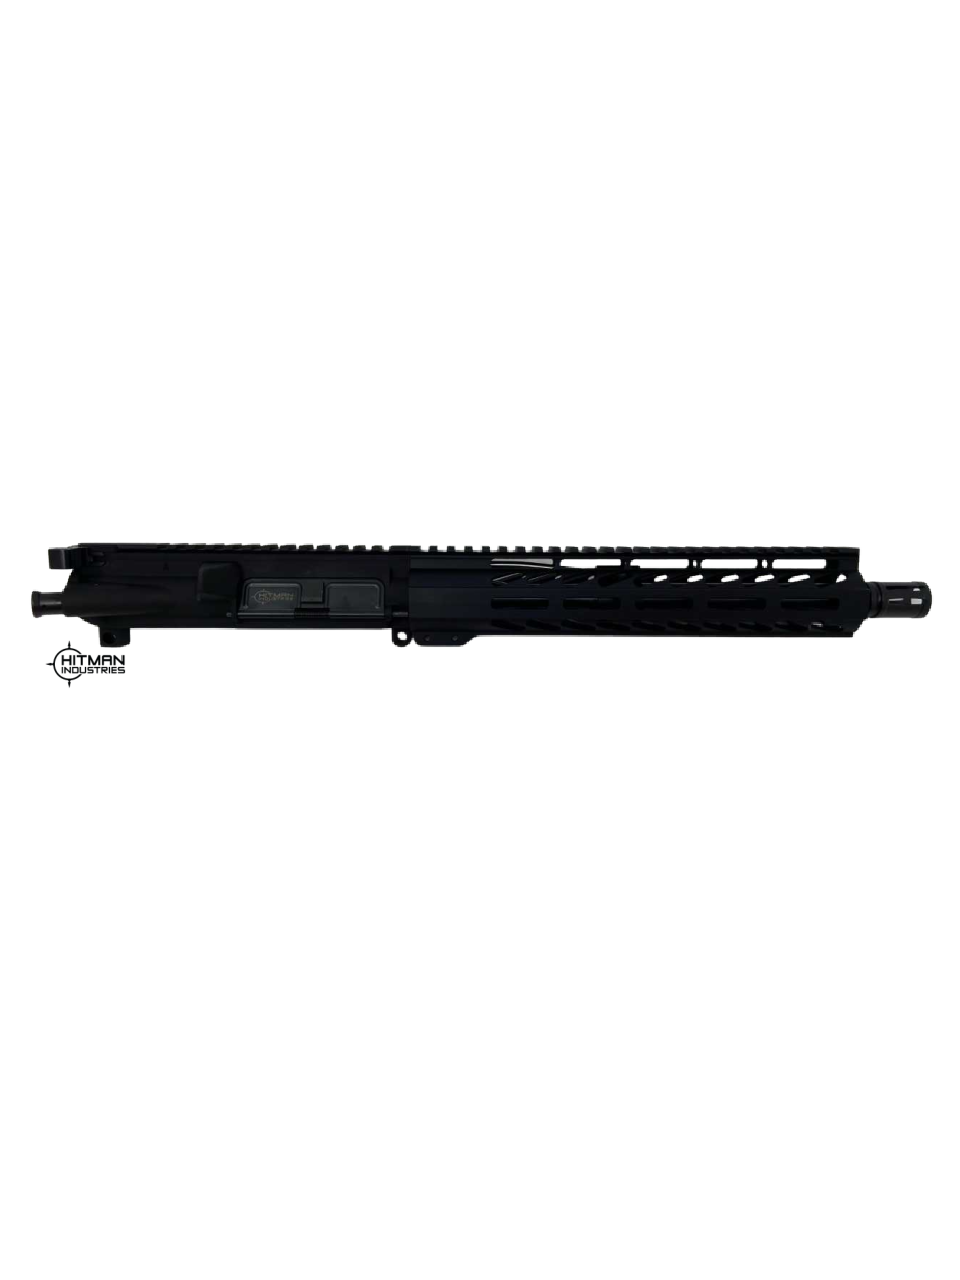 AR-15 UPPER ASSEMBLY 10.5